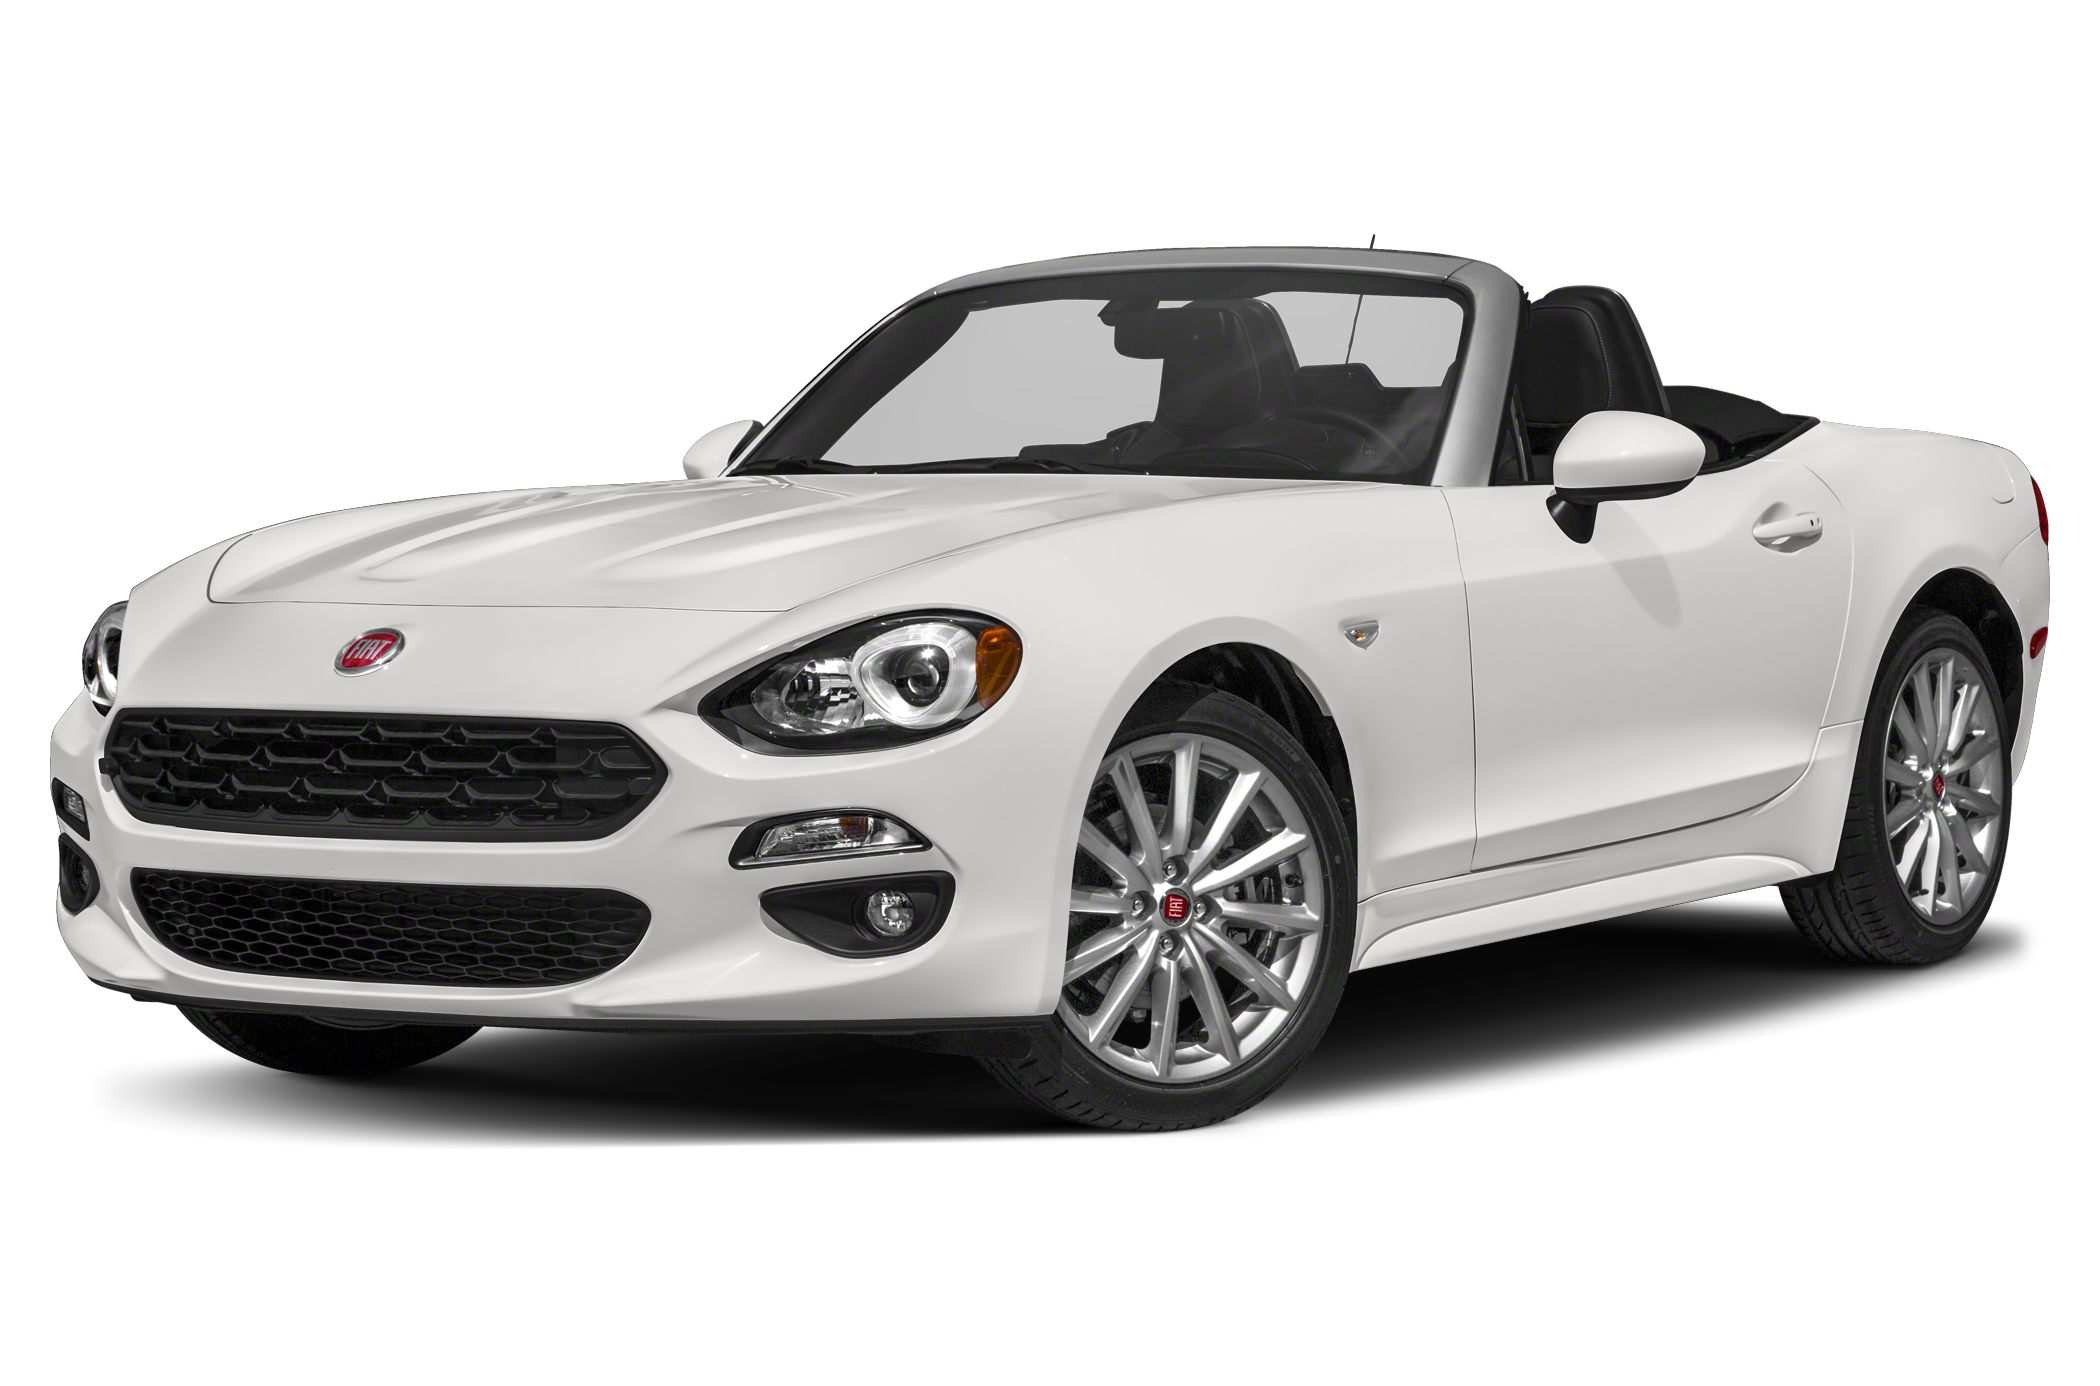 47 New 2019 Fiat 124 Spider Lusso Exterior for 2019 Fiat 124 Spider Lusso